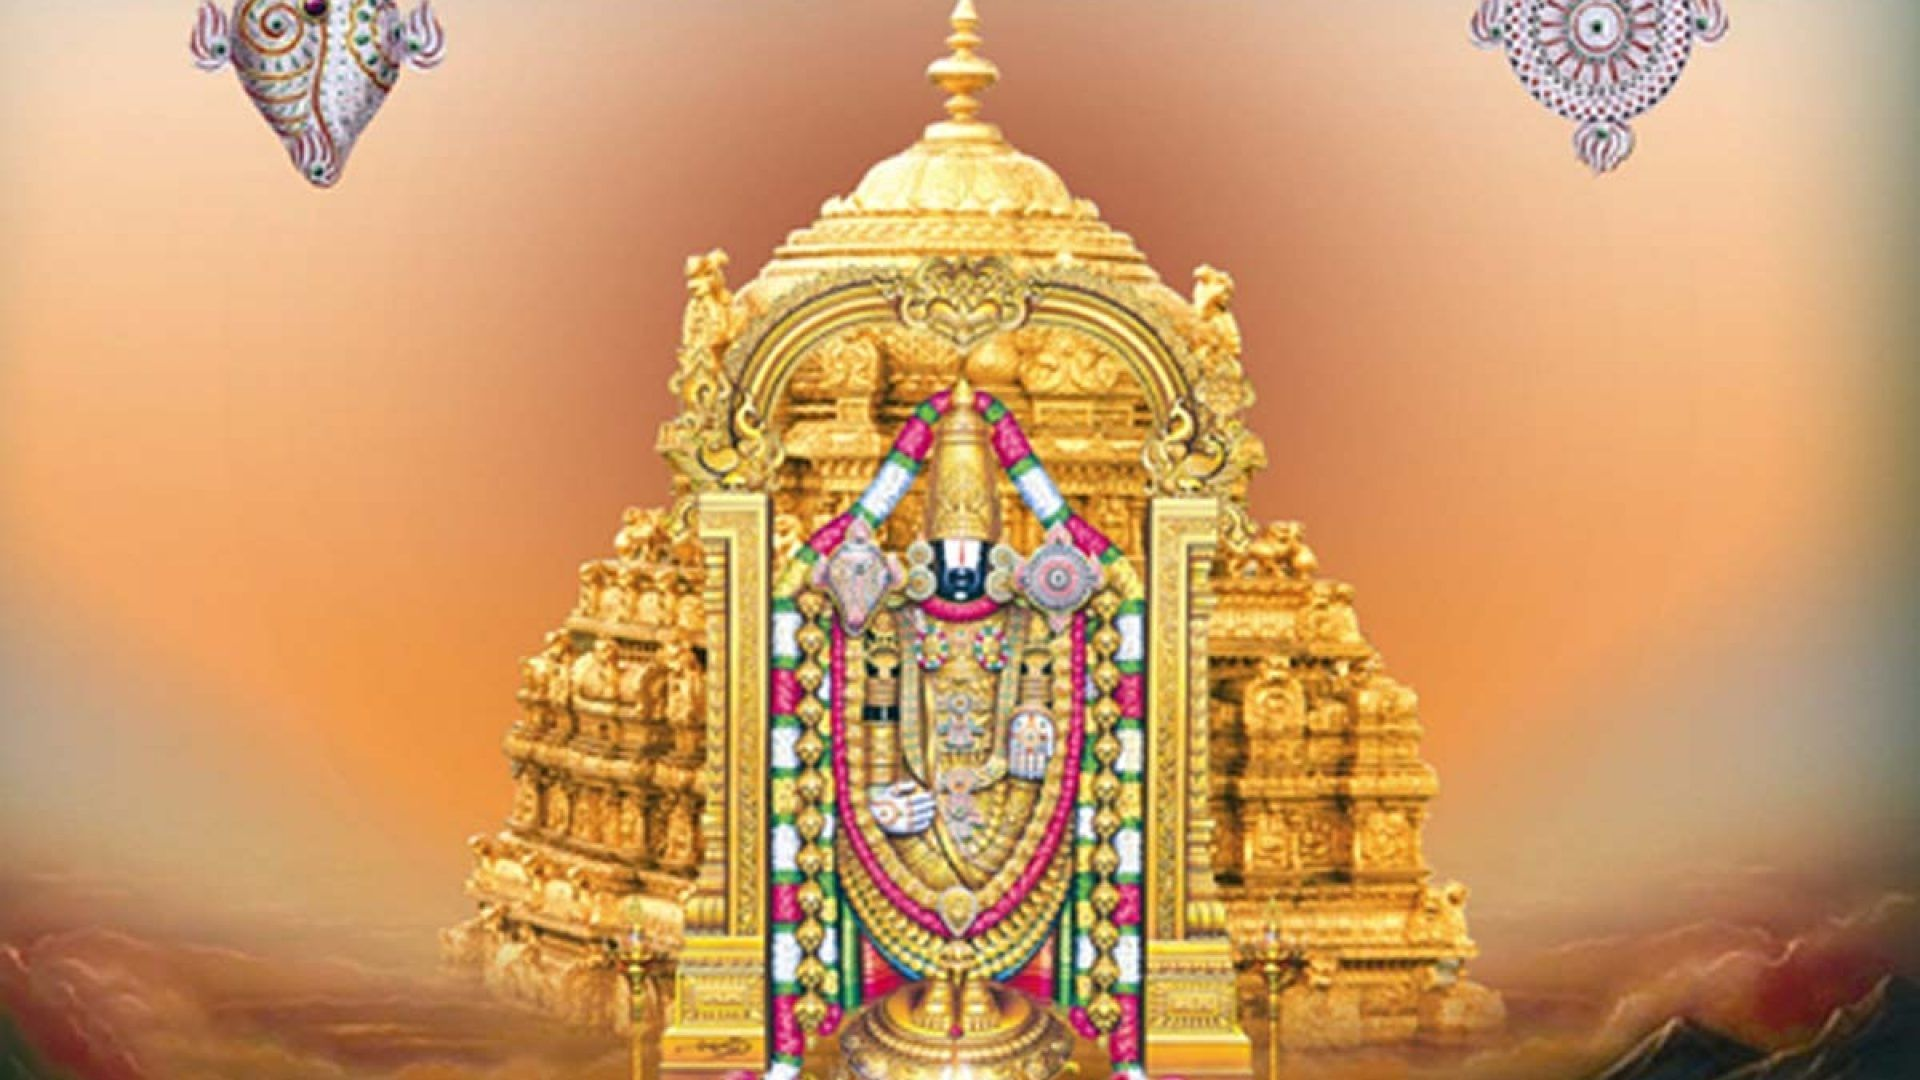 Fresh Lord Venkateswara Hd Wallpapers 1920 1080 Free Hd Wallpaper Wallpaper God Pictures